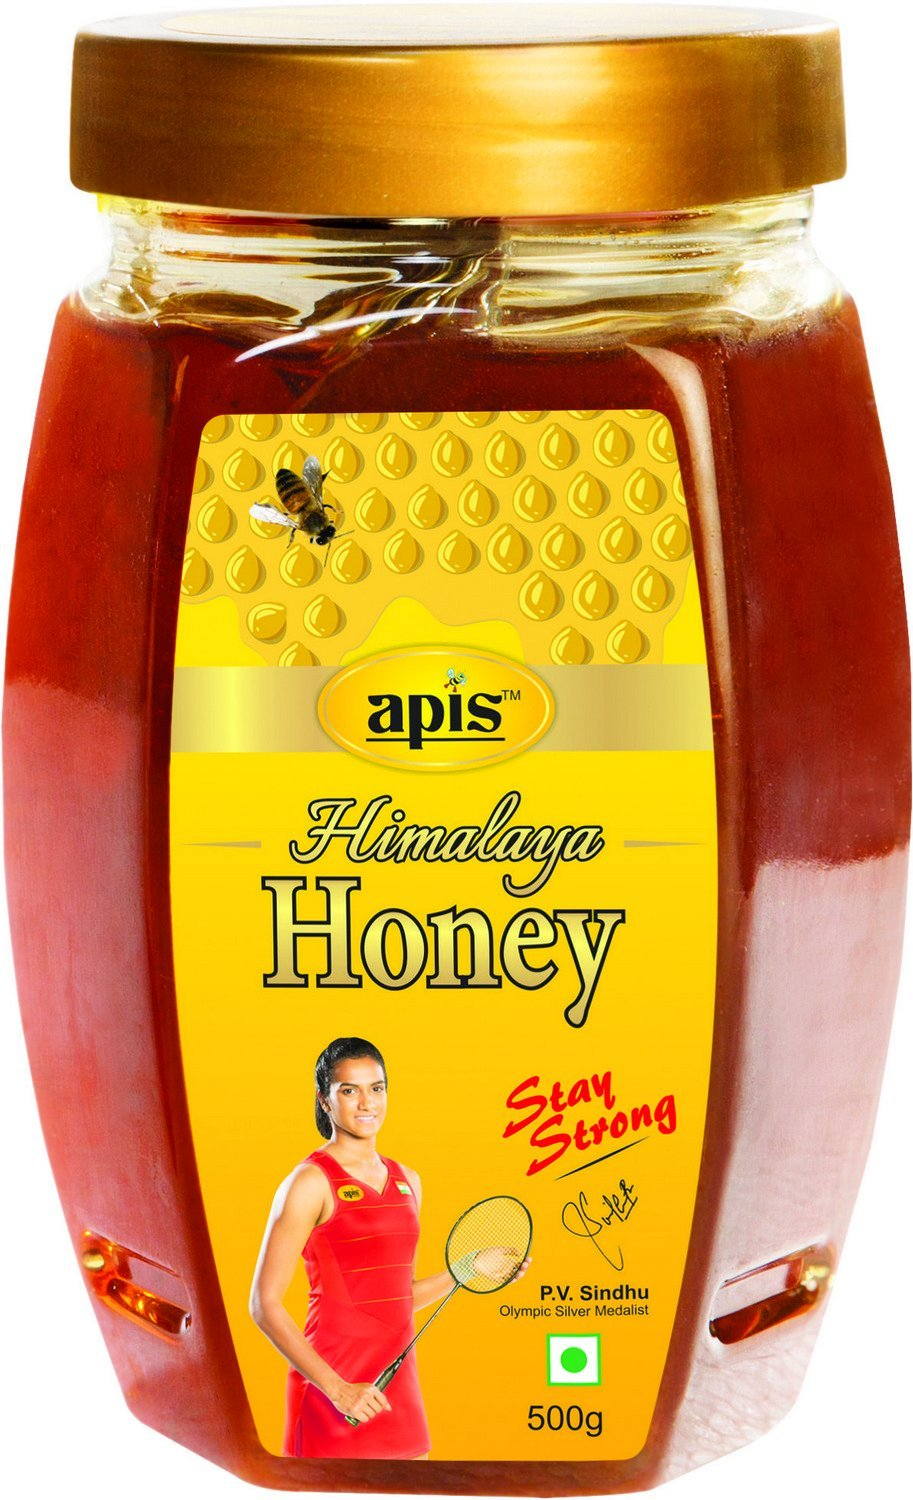 Amazon - Buy Apis Himalaya Honey, 500g (Buy one, get one Free) for Rs.156 only